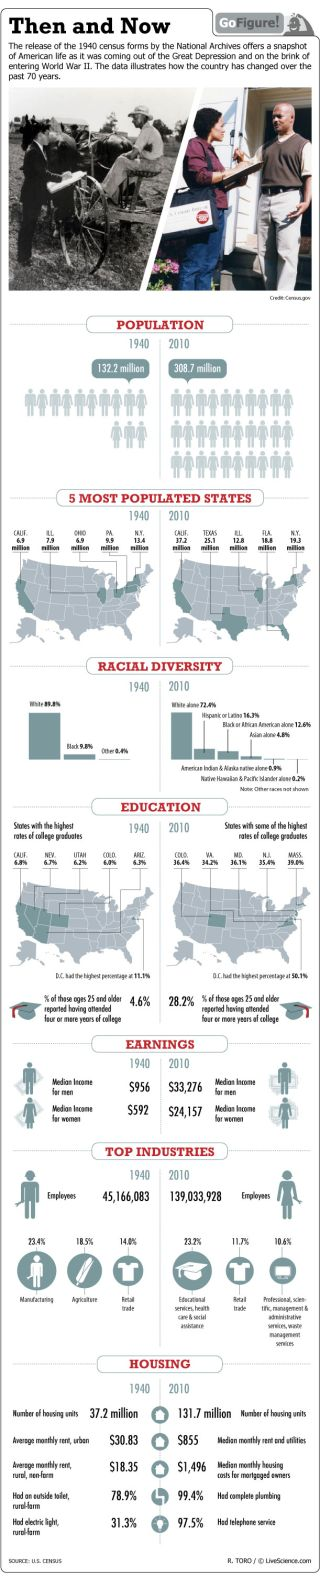 There are more of us, we are better educated and are more racially diverse, for starters.